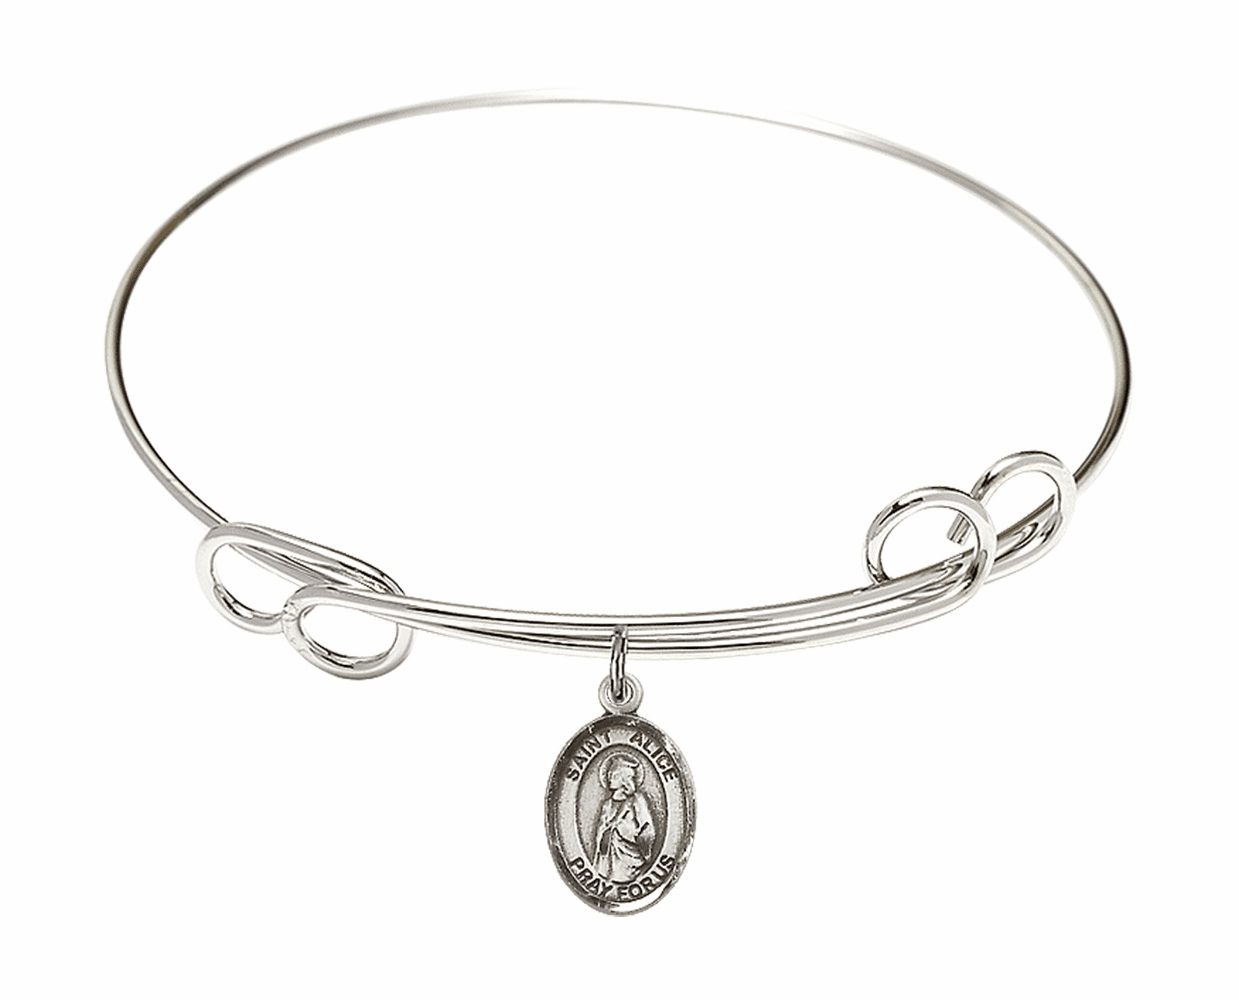 Round Loop St Alice Bangle Charm Bracelet by Bliss